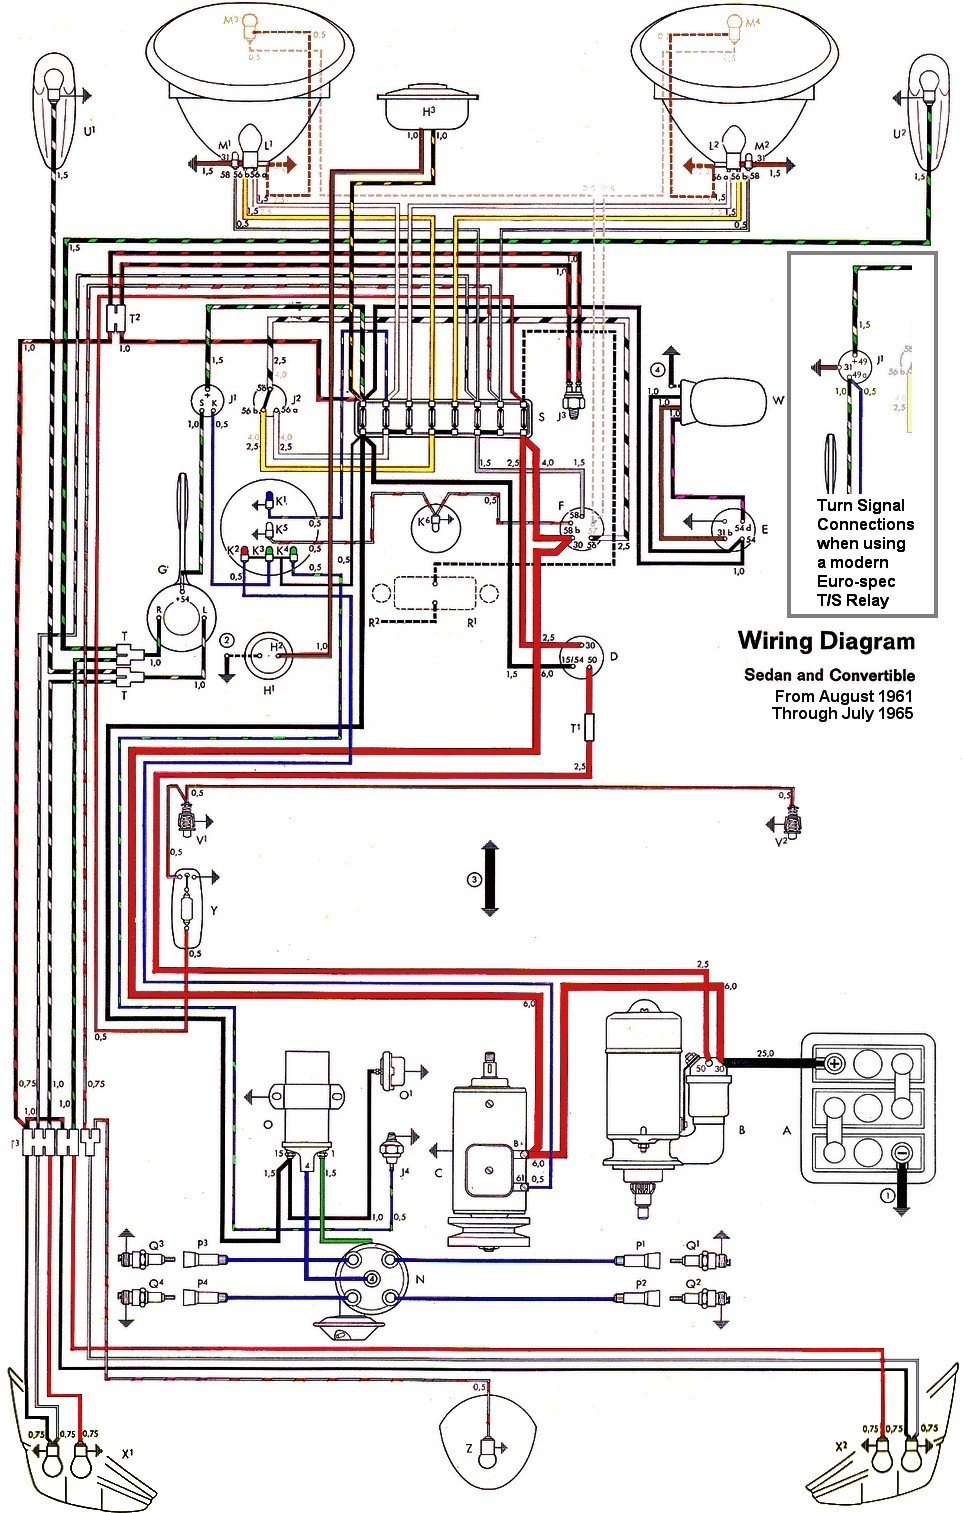 bug_62 65withinset volkswagen wiring diagram volkswagen golf wiring diagram \u2022 free 1973 super beetle wiring harness at reclaimingppi.co